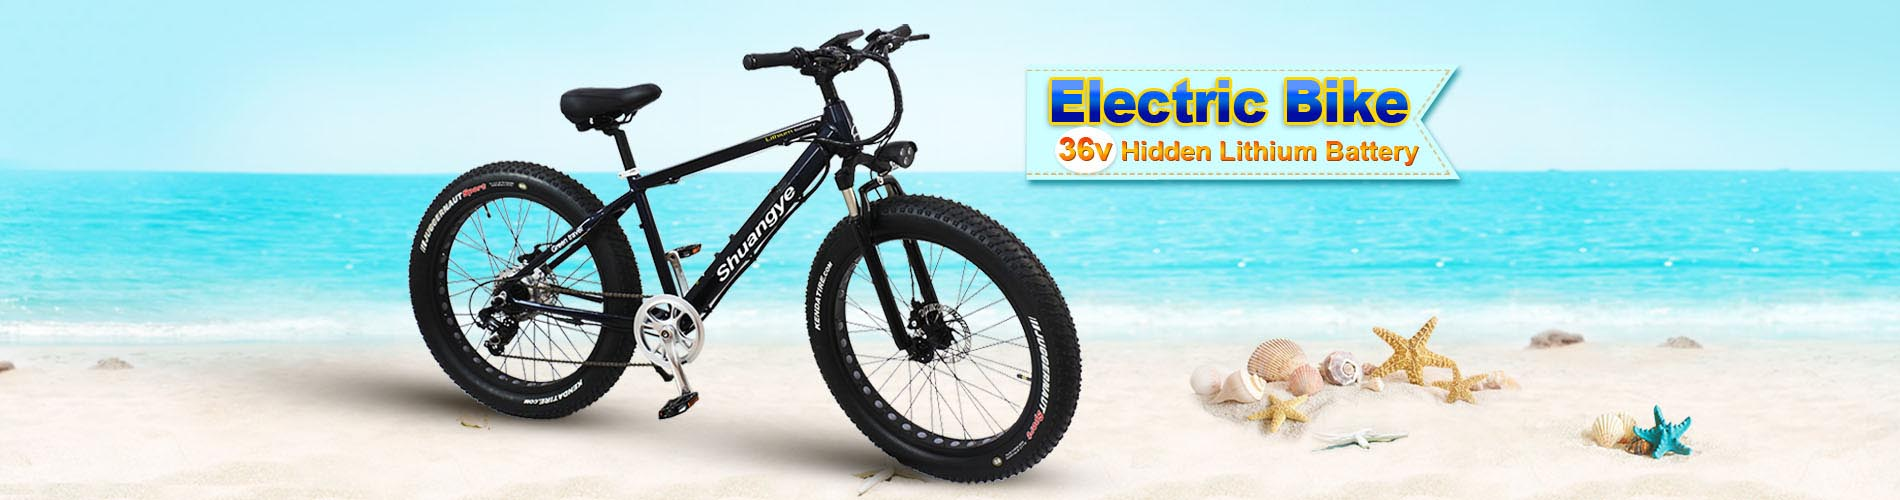 electric bicycle Front headlight upgrade provides USB charging